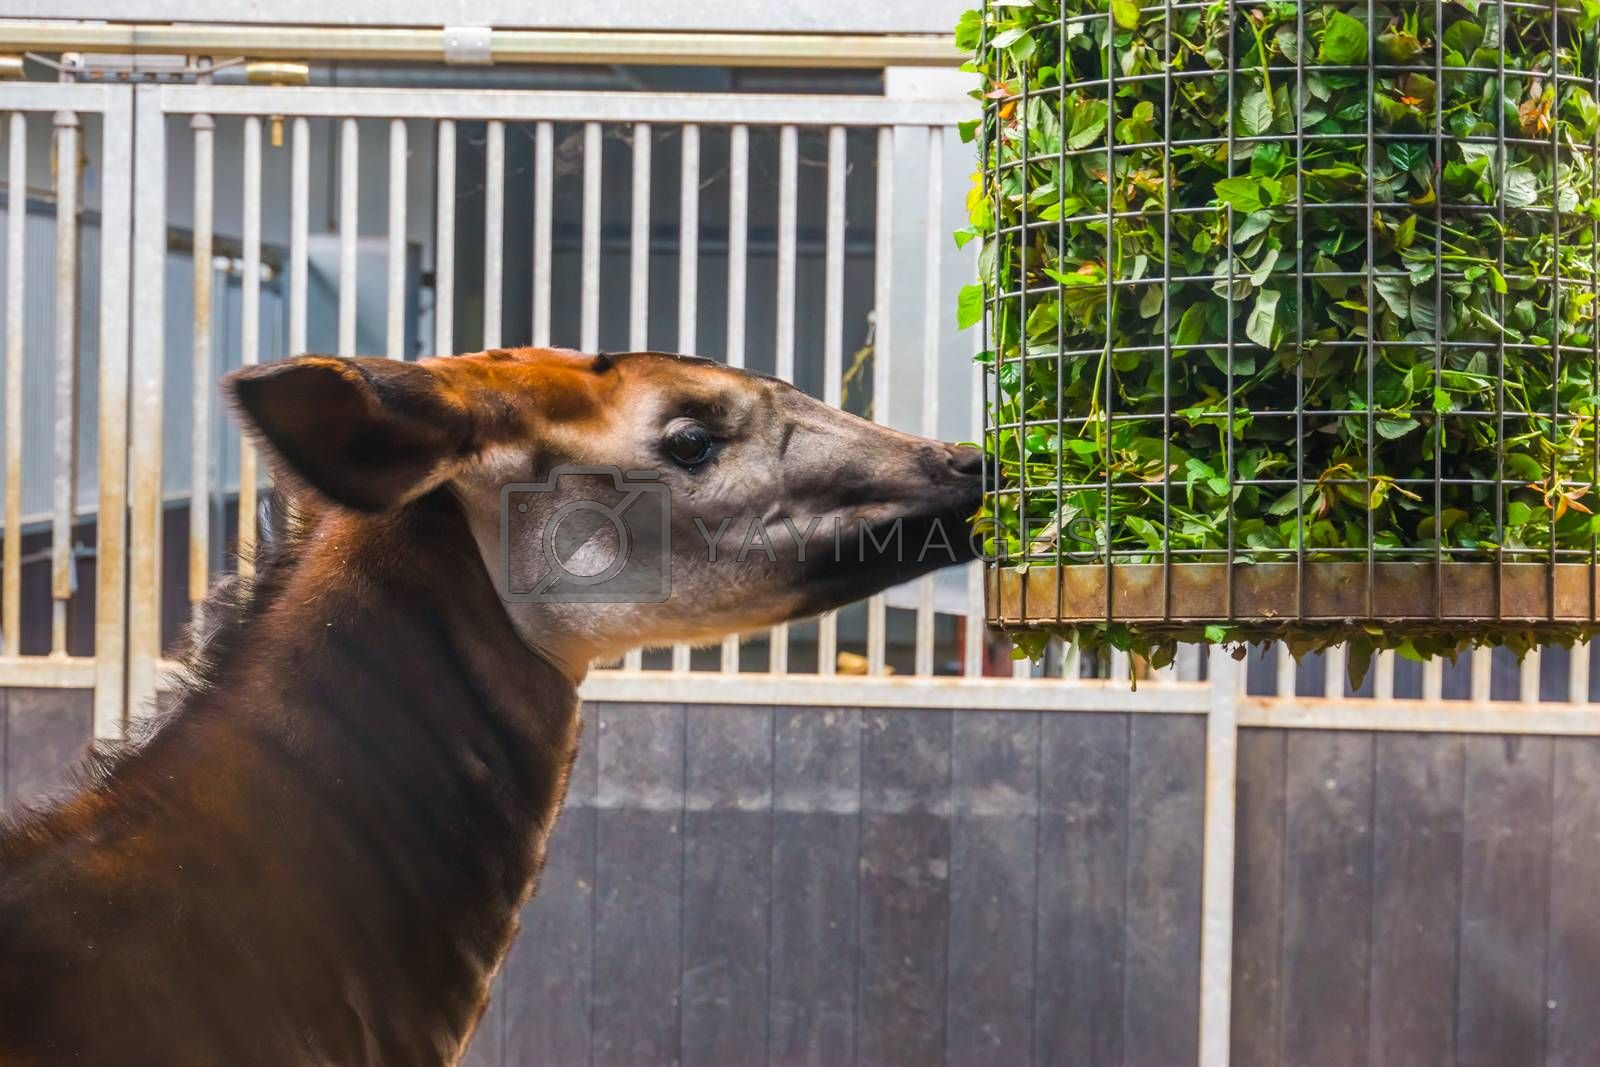 closeup of a okapi eating from a basket full of branches with green leaves, zoo animal feeding, Endangered giraffe specie from Congo